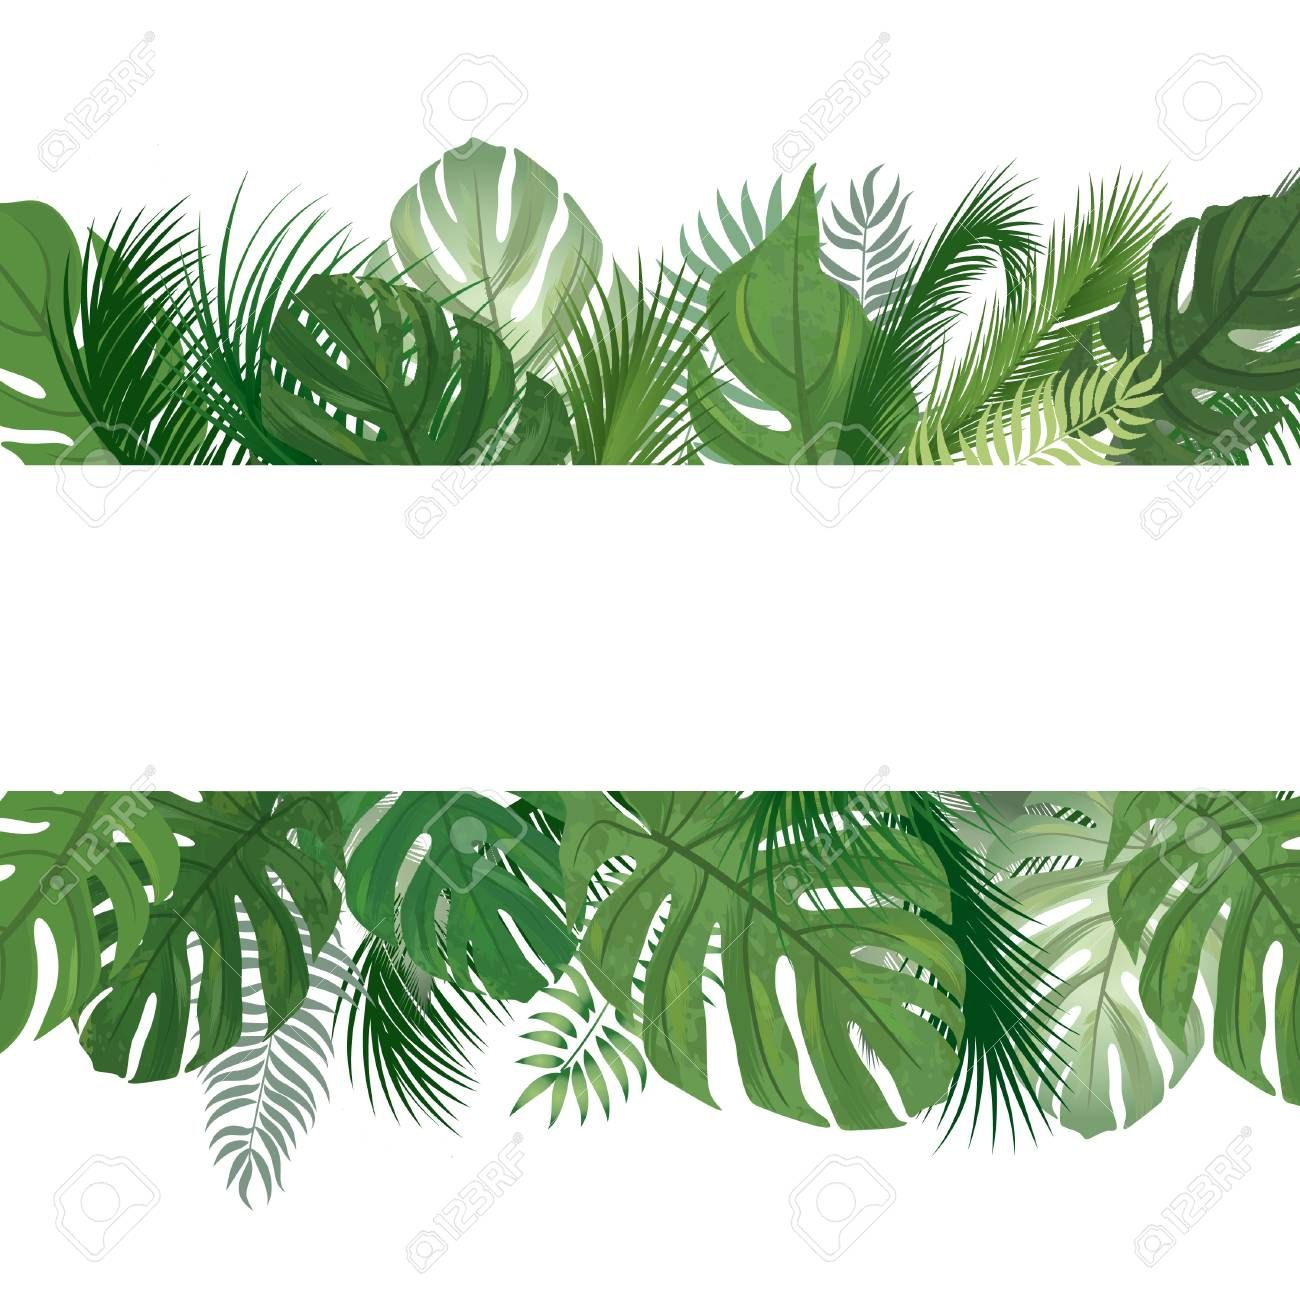 Palm Leaves Border Free Palm Leaves Border Png Transparent Images 50940 Pngio Tropical Leaves Leaf Background Seamless Patterns Search for more beautiful pictures and free images on picjumbo! tropical leaves leaf background